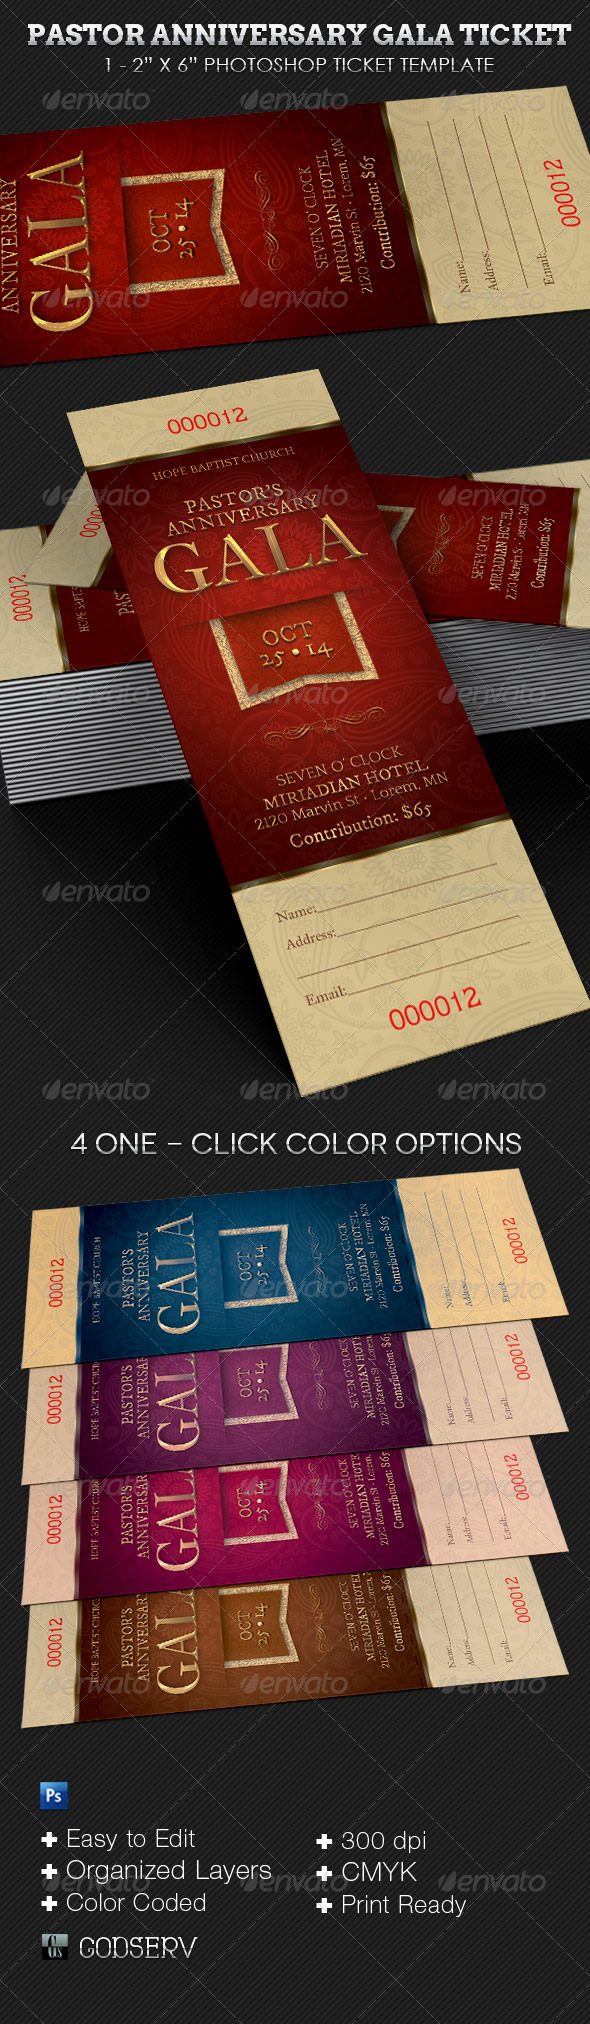 GraphicRiver Pastor Anniversary Gala Ticket Template 6675671